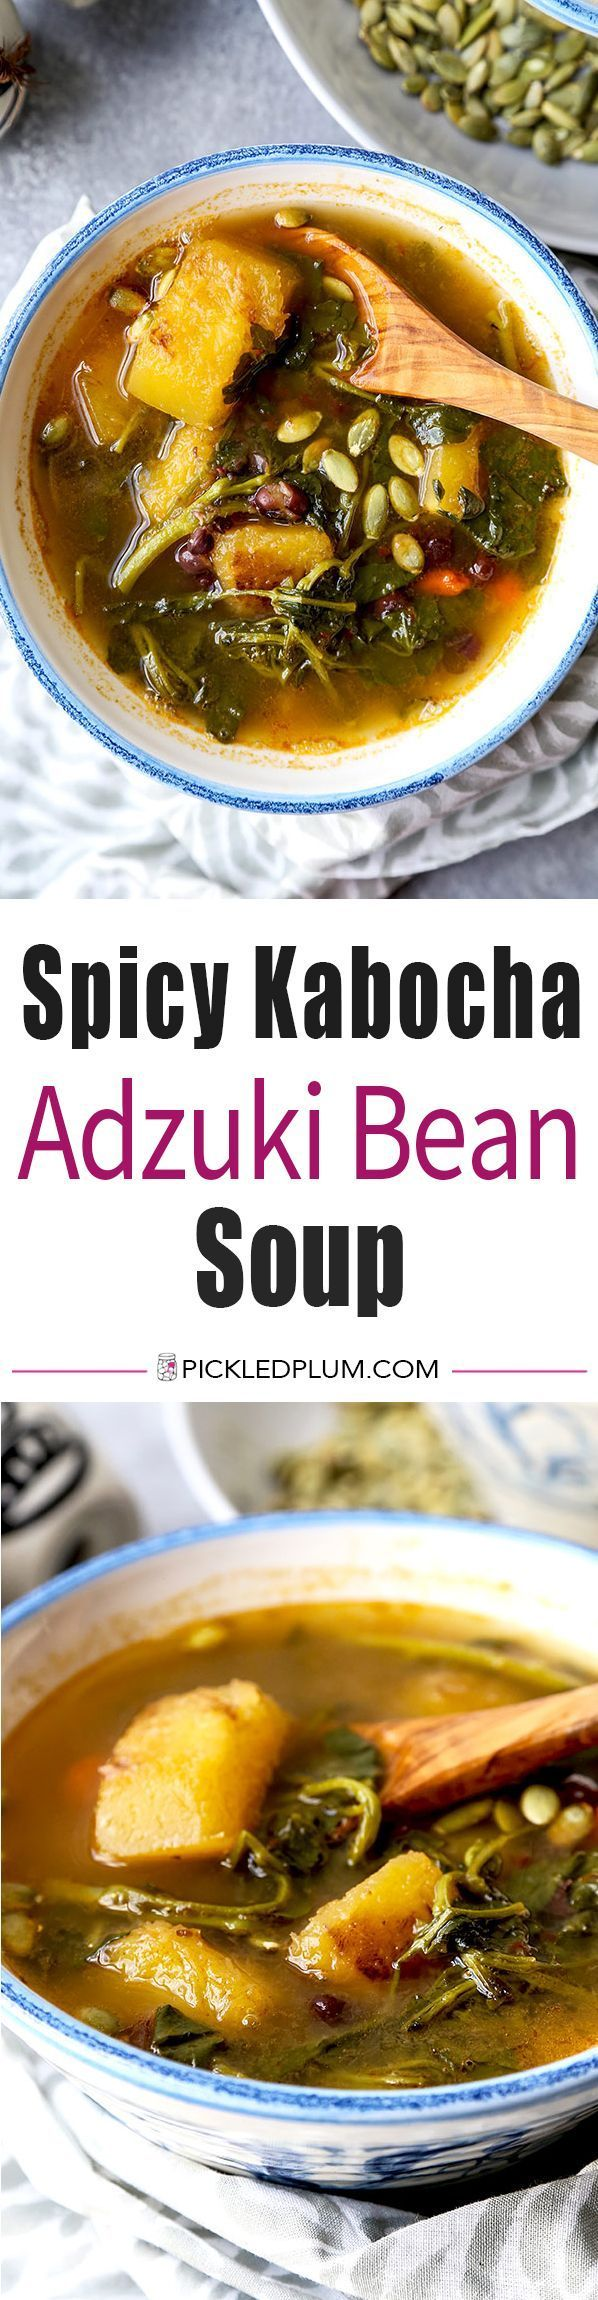 Spicy Kabocha Squash Soup With Adzuki Beans - Soup packed with power foods, super healthy! vegetarian appetizers, soups, healthy soup recipes, Japanese food recipe, adzuki beans recipe, Asian soup | pickledplum.com